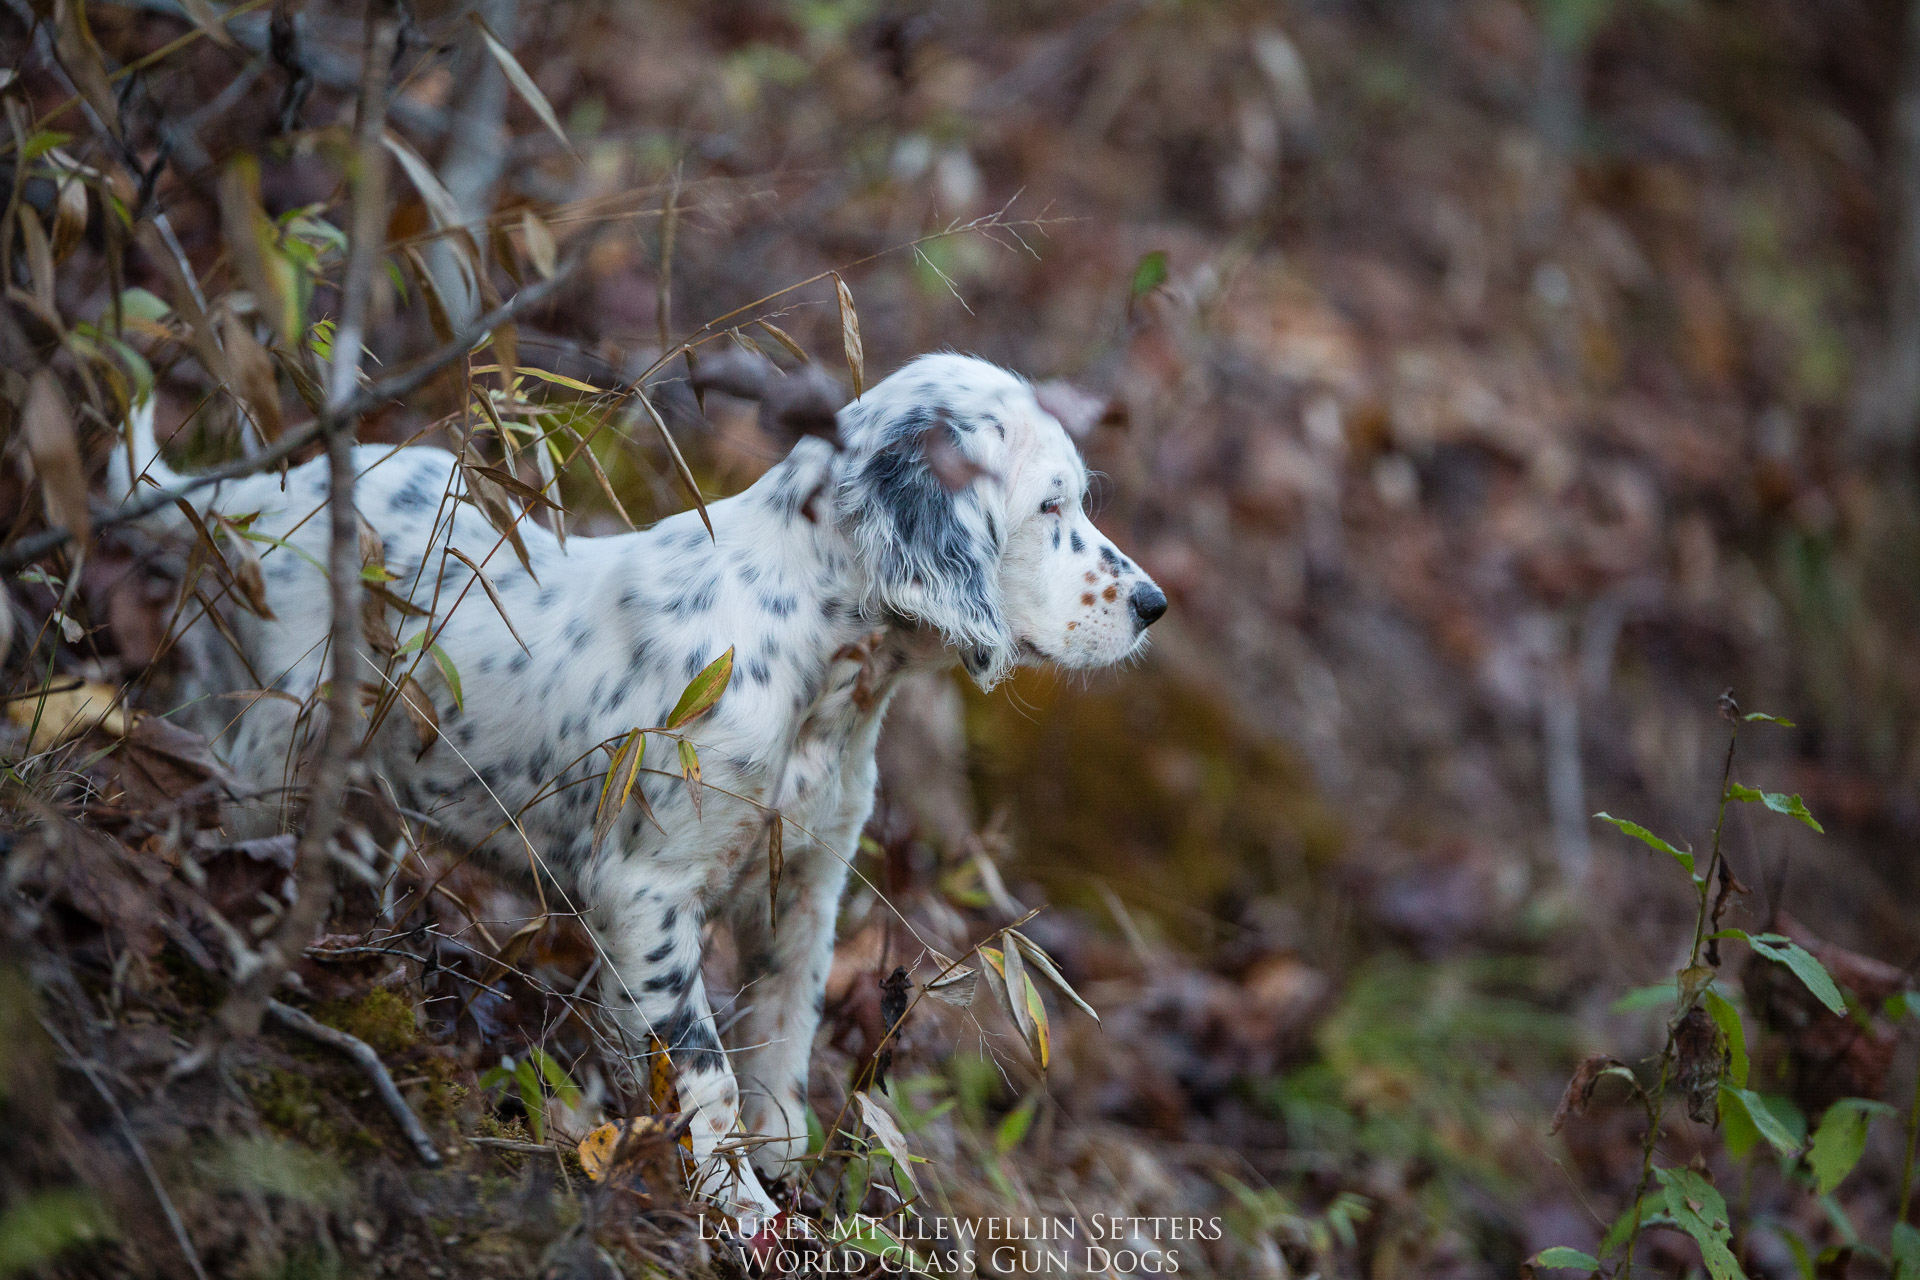 Laurel Mt Llewellin Setter Puppy, Hope